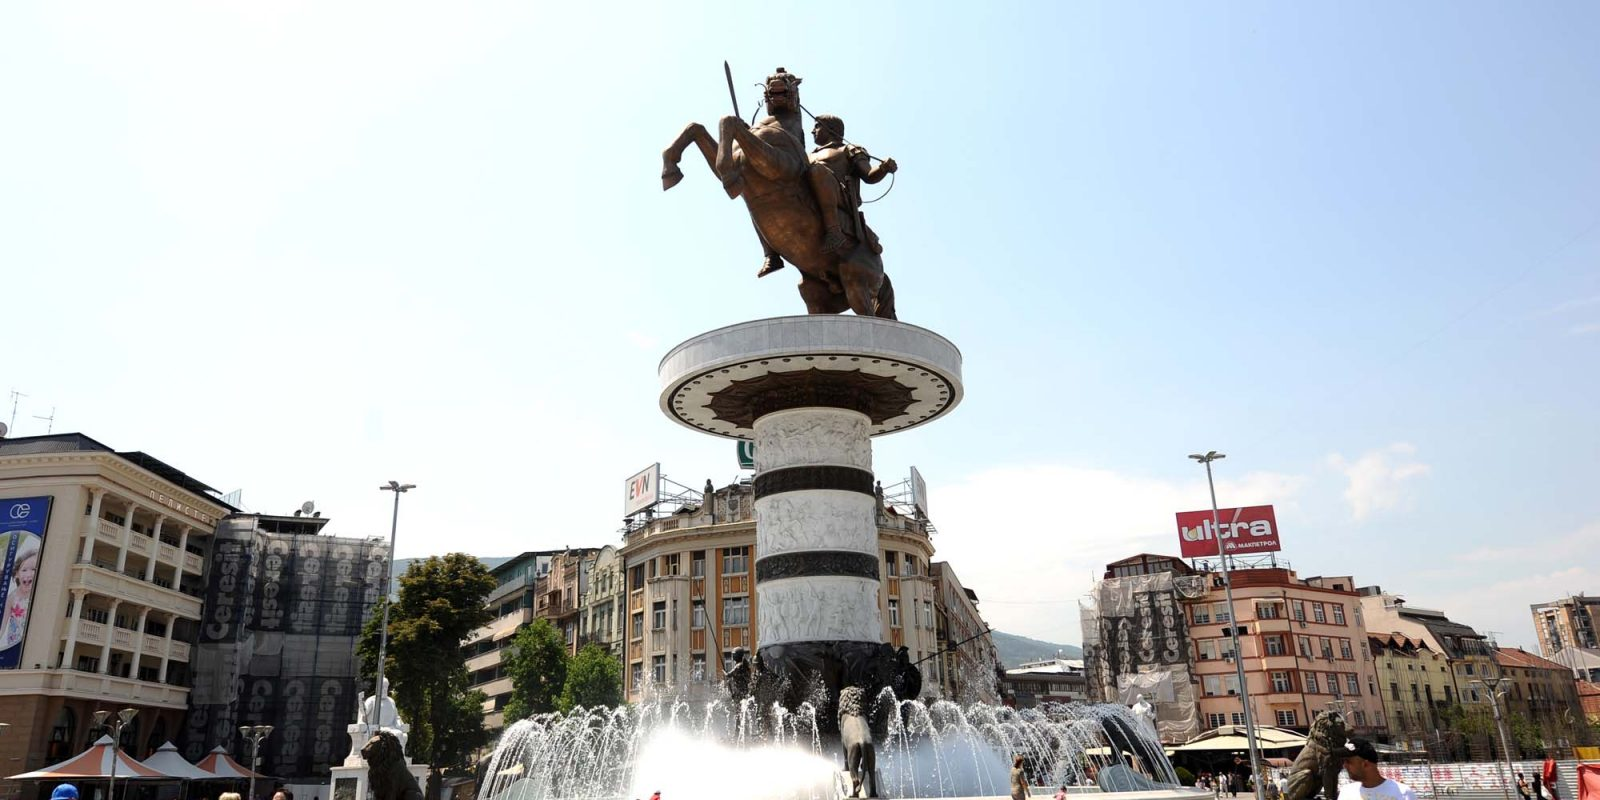 A new round of talks expected this week, uncertainties in Skopje